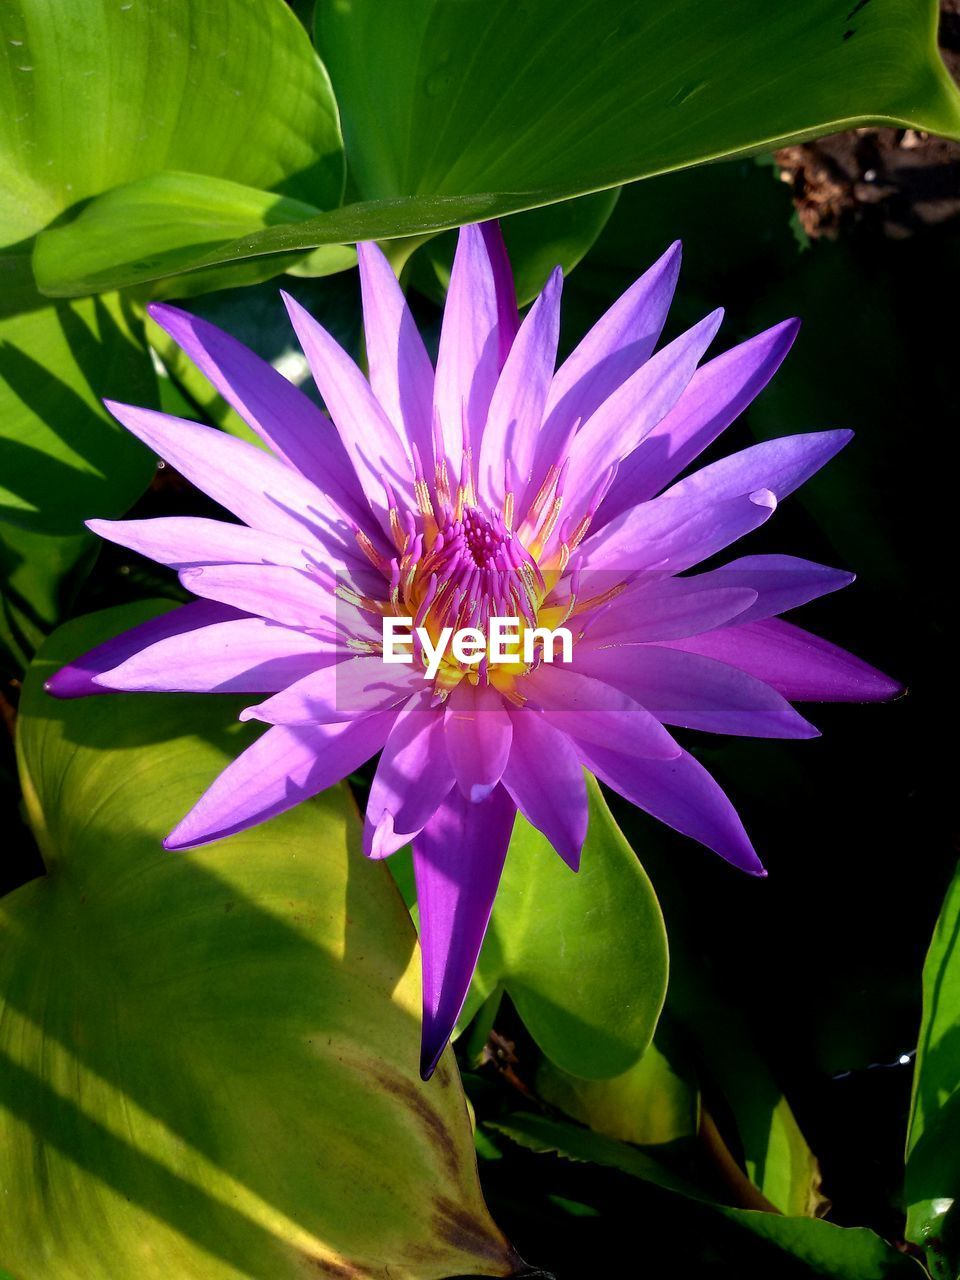 flower, flowering plant, freshness, plant, vulnerability, fragility, beauty in nature, petal, flower head, inflorescence, growth, close-up, purple, leaf, plant part, nature, water lily, pollen, day, no people, lotus water lily